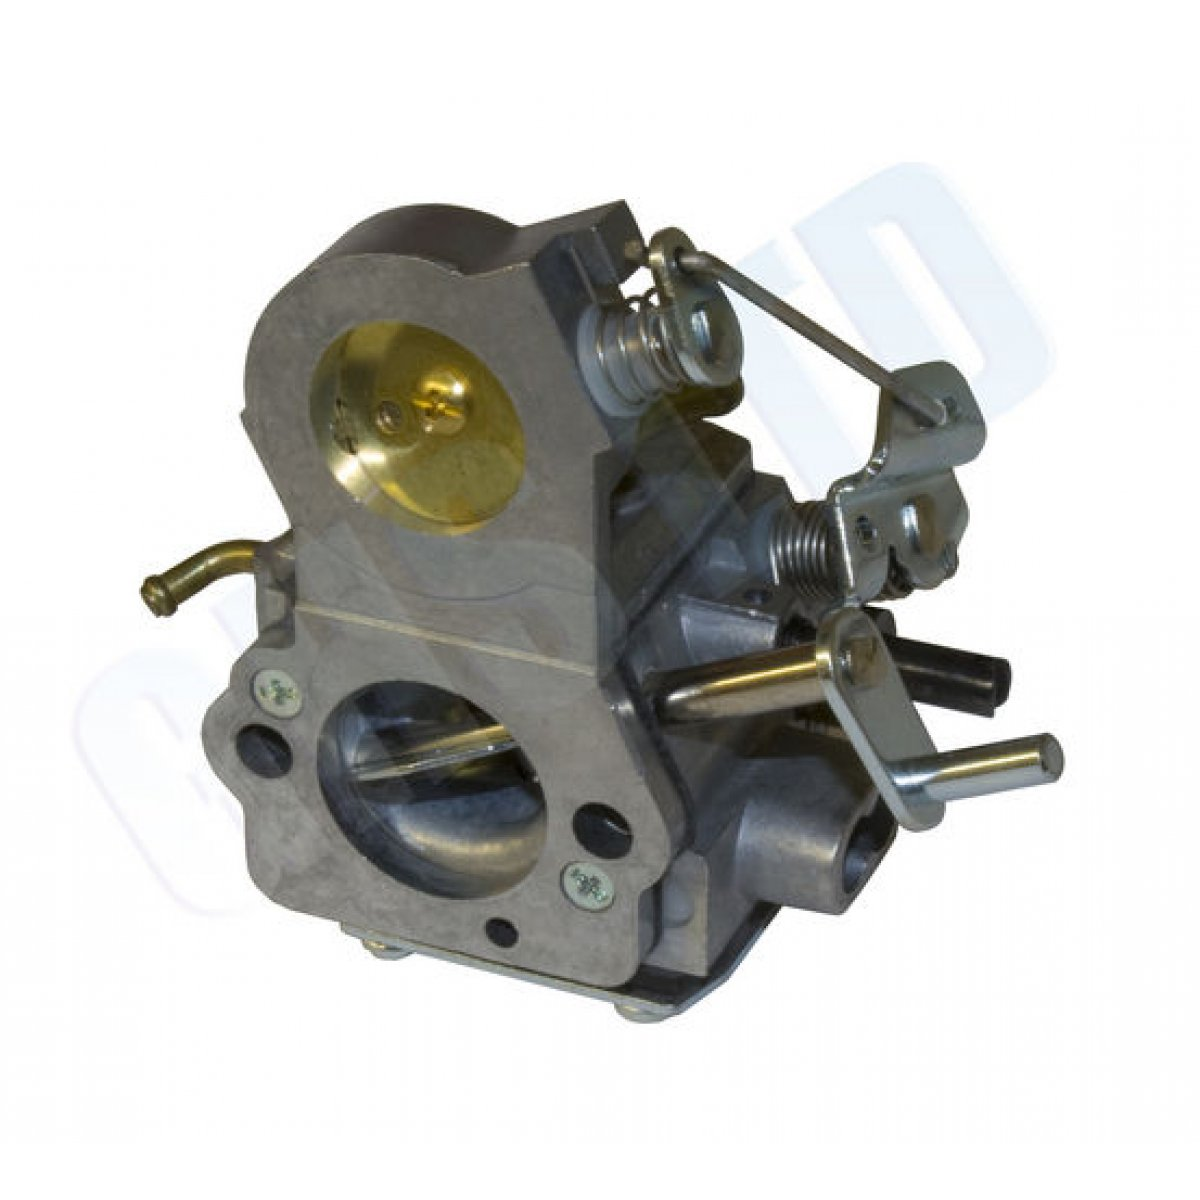 Replacement Carburetor For The K970 Husqvarna Cut Off Saw